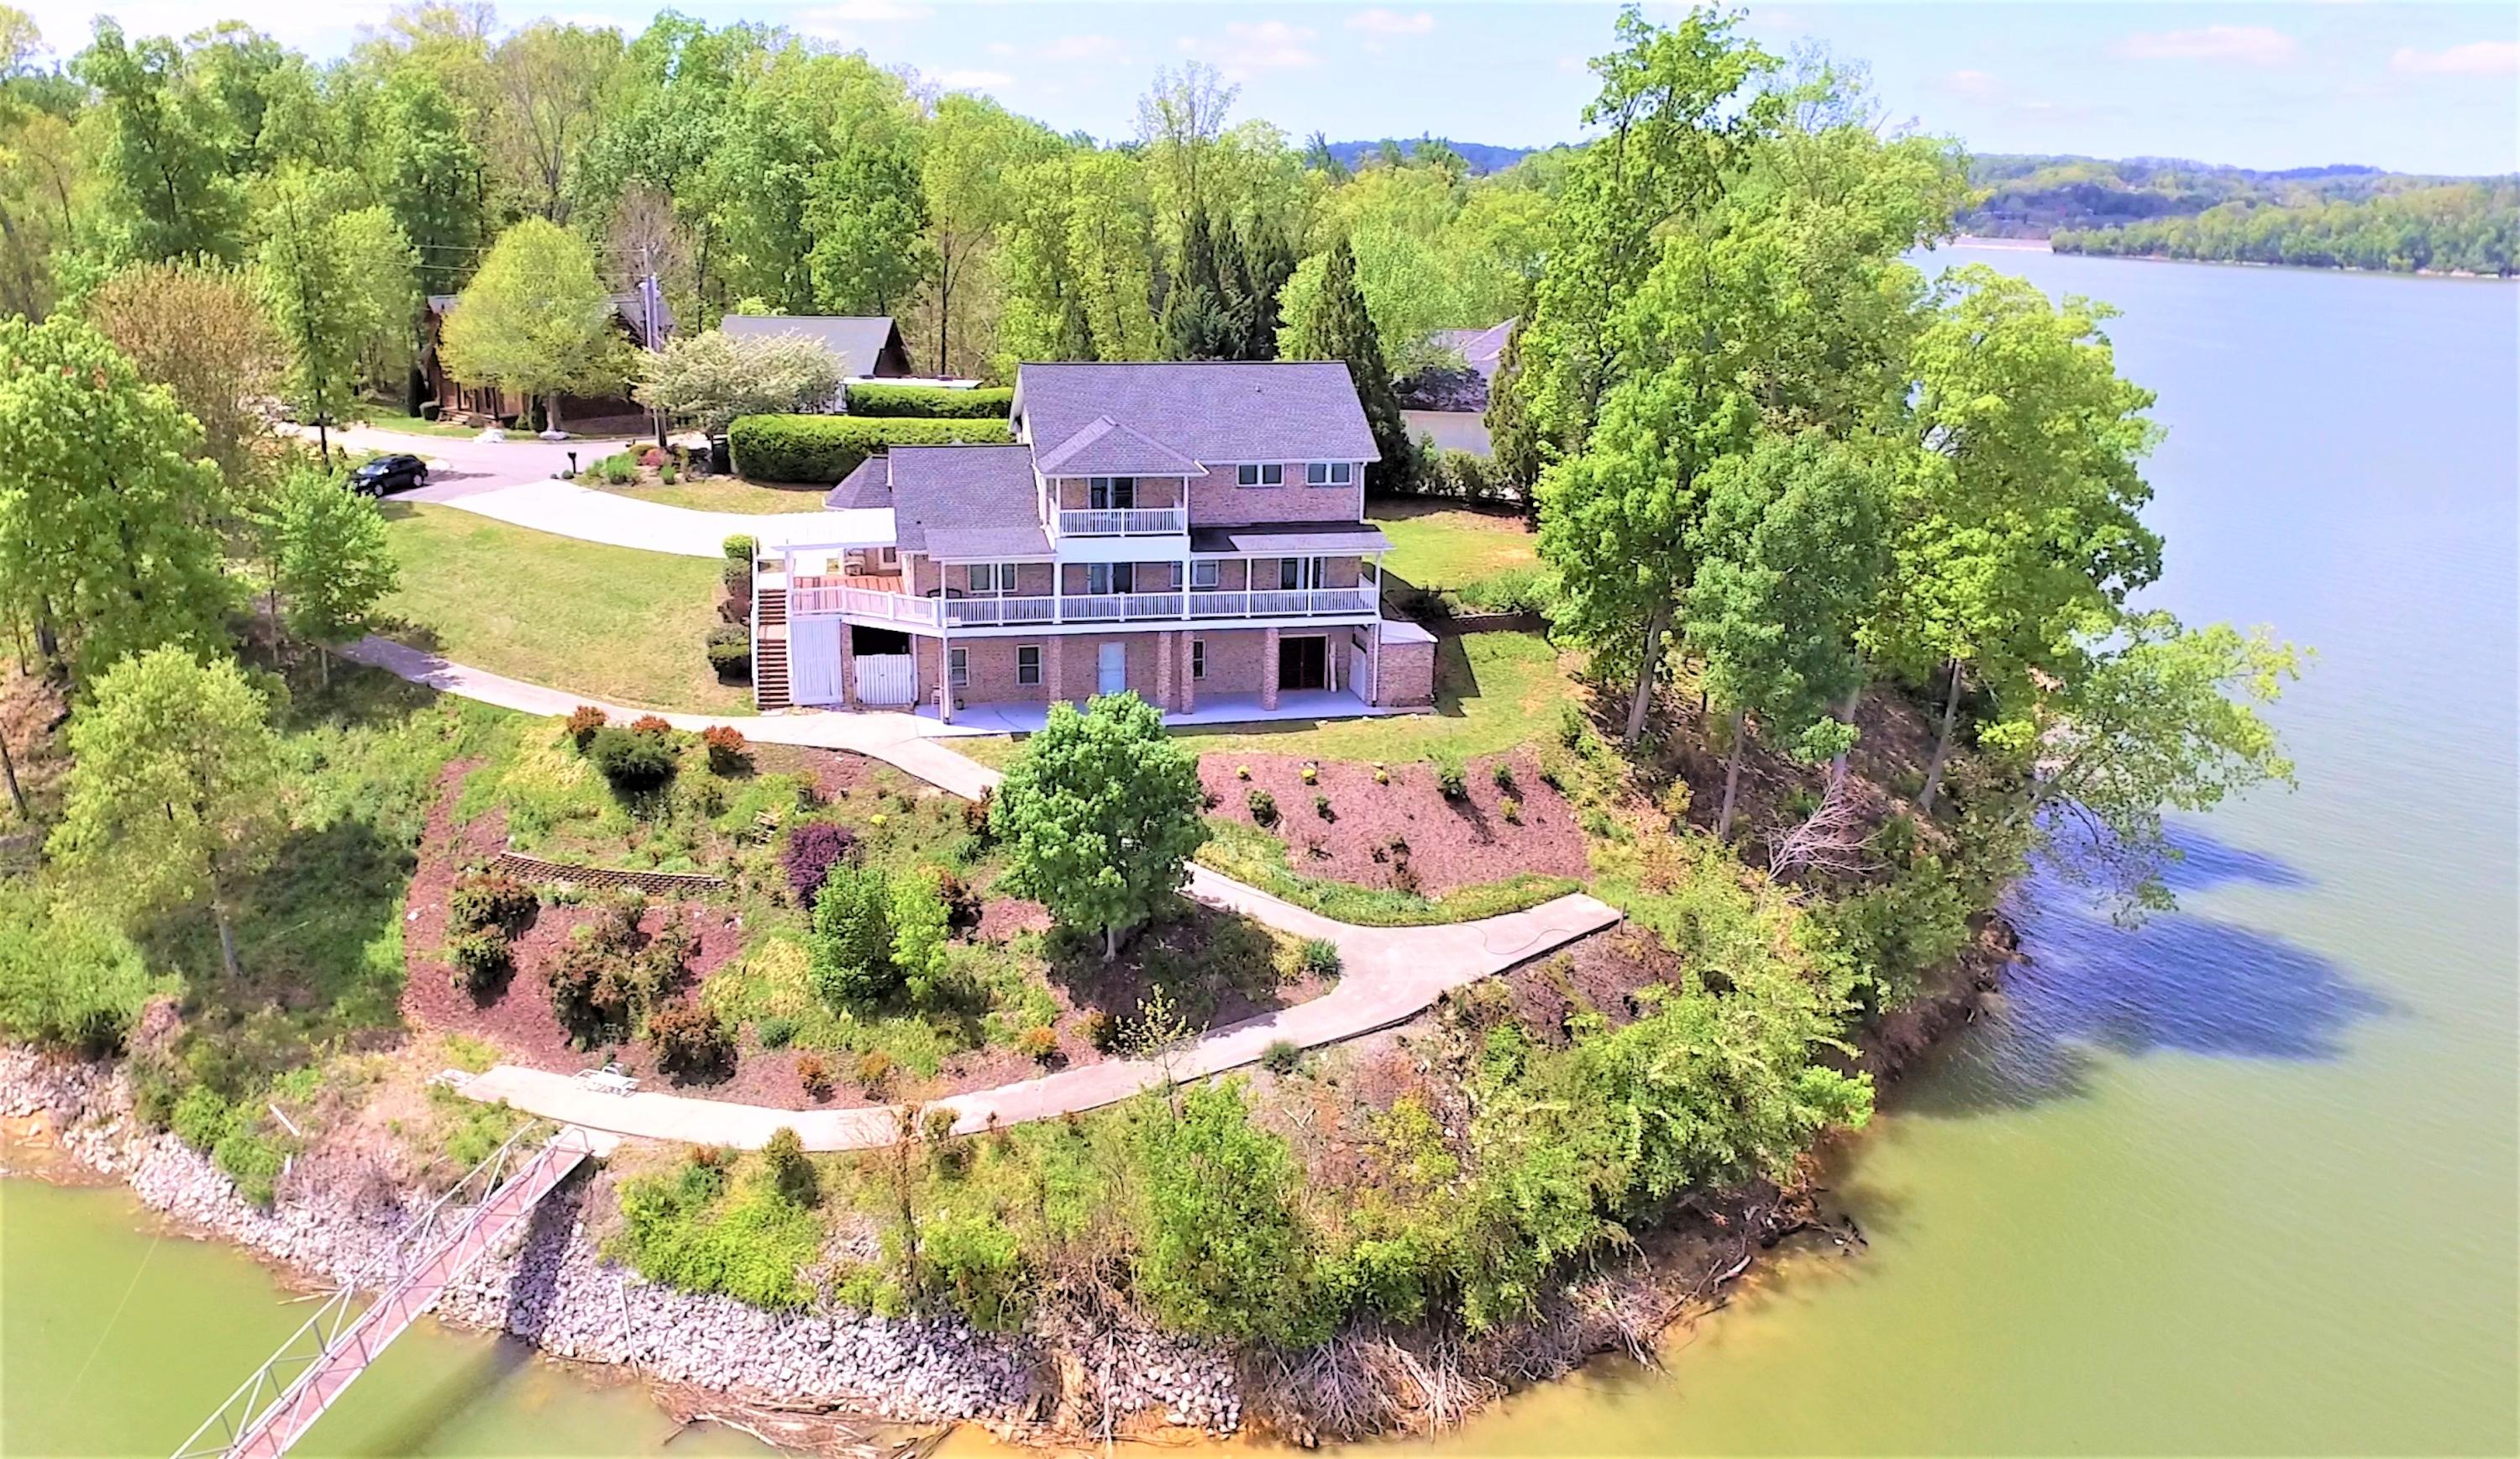 1540 Persimmon Orchard Drive, Dandridge, Tennessee 37725, 3 Bedrooms Bedrooms, ,3 BathroomsBathrooms,Single Family,For Sale,Persimmon Orchard,1115049